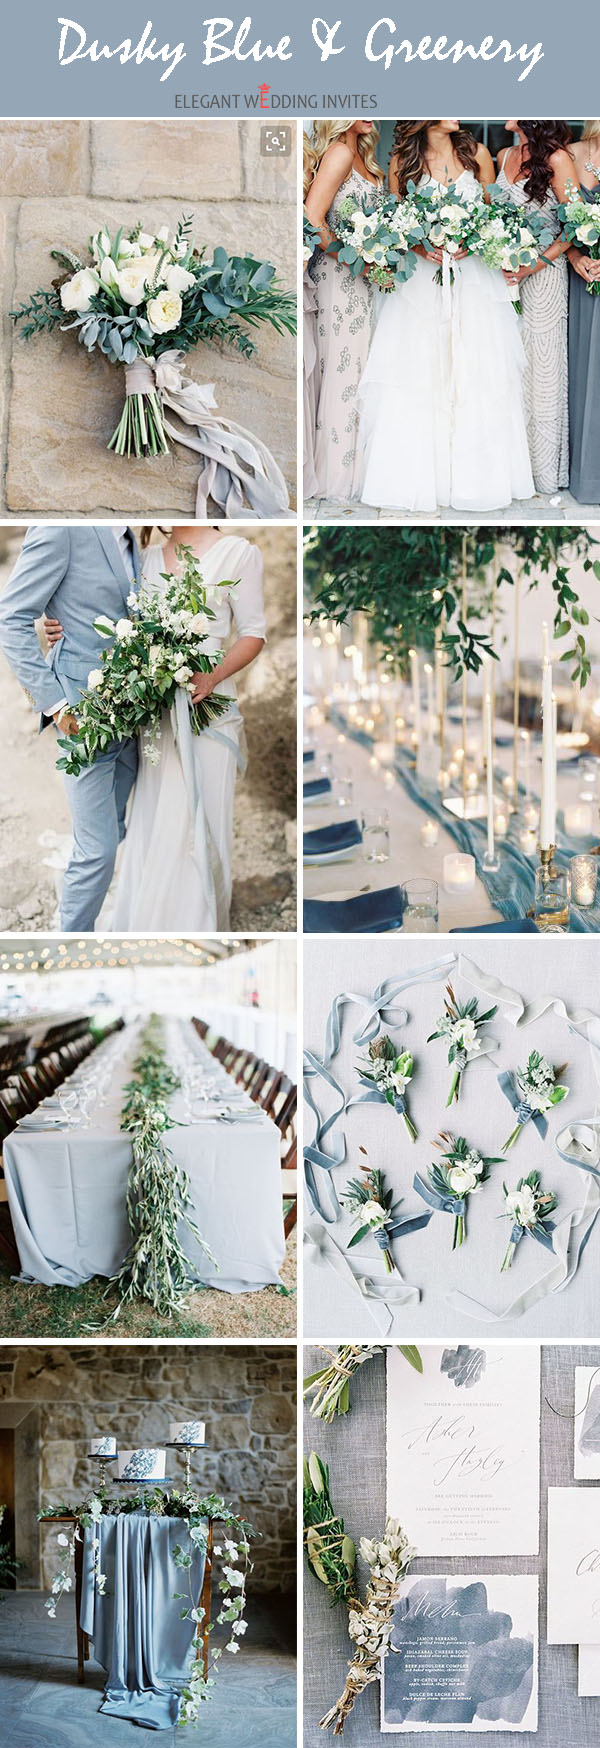 dusky blues neutral shades organic wedding color palette ideas for all seasons